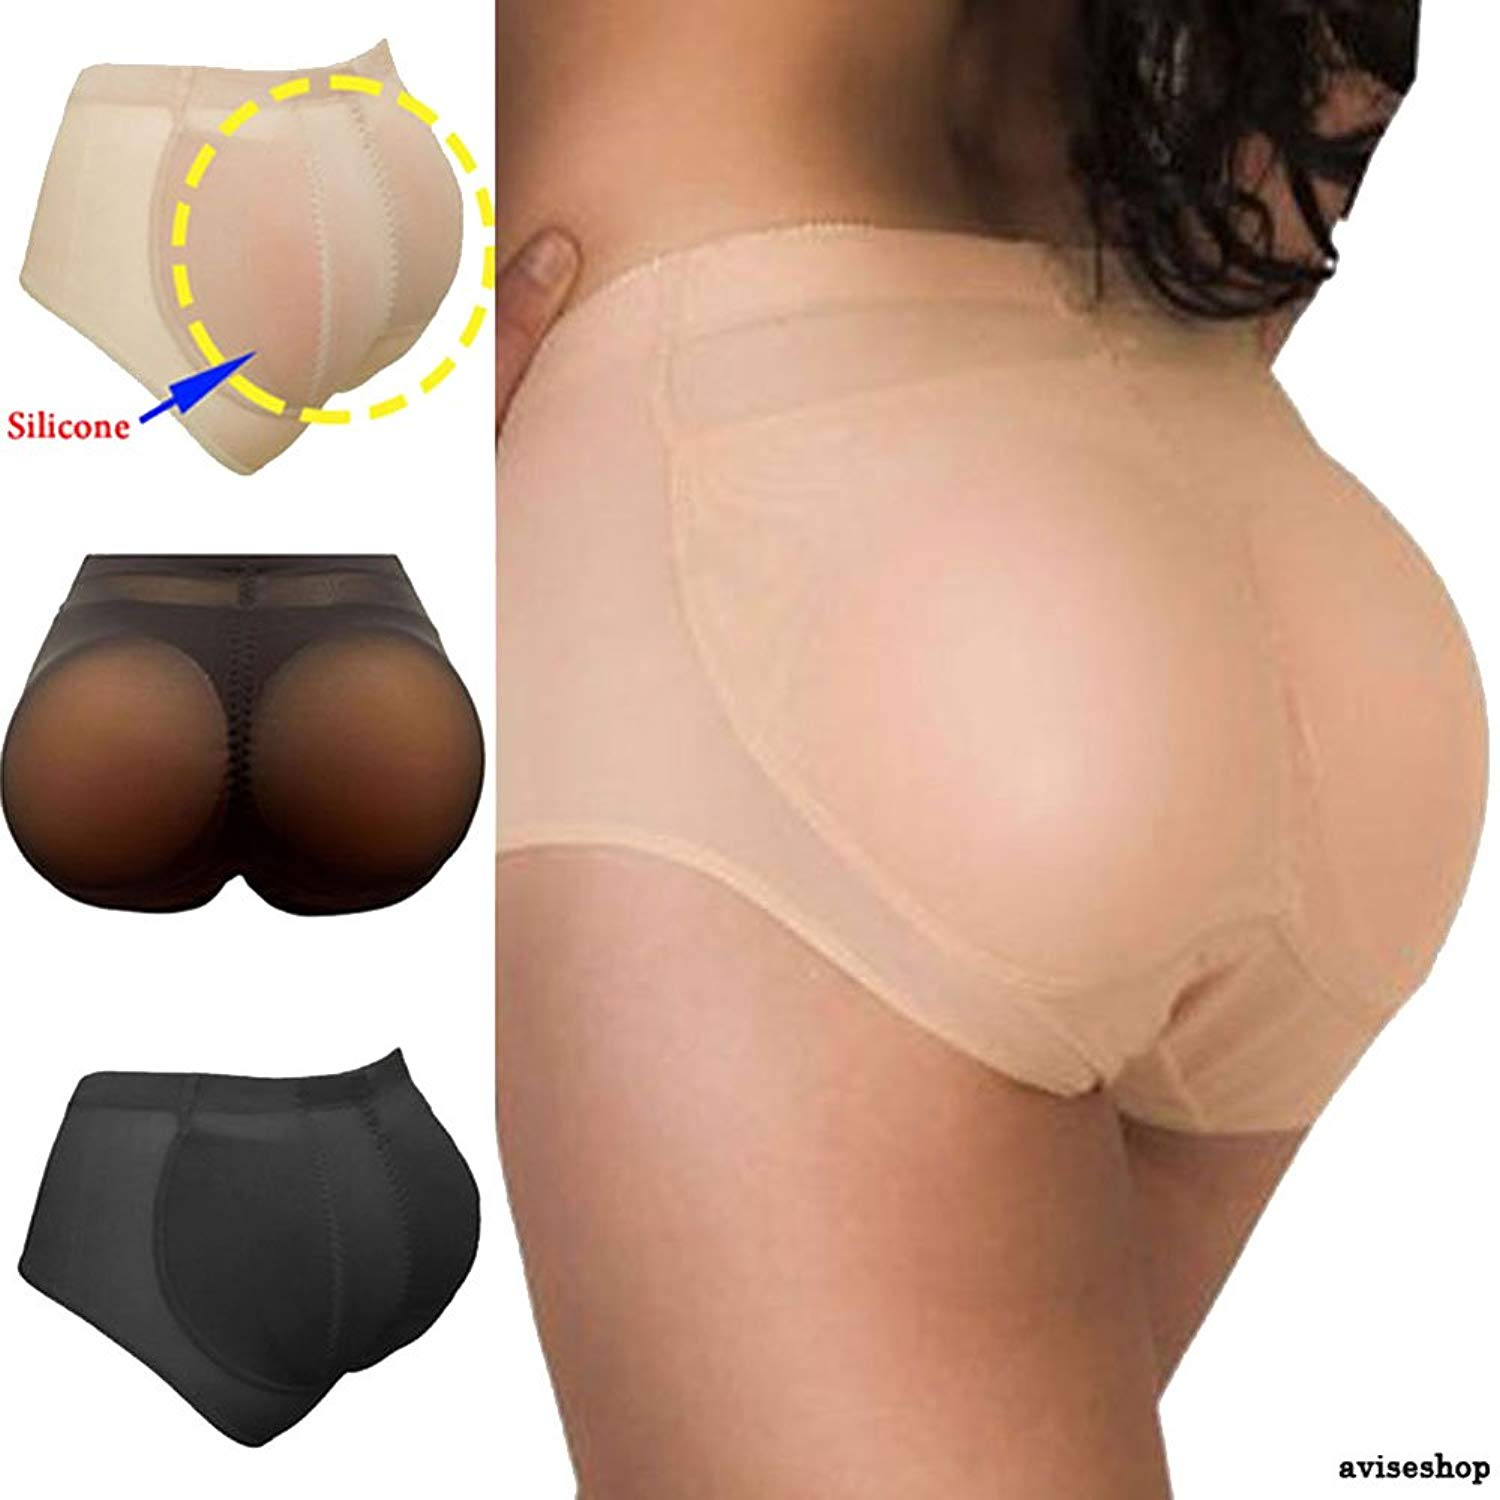 8b5efc231b346 Best Silicone Butt Padded Buttocks Enhancer Body Shaper Push up Pads Panty  Set